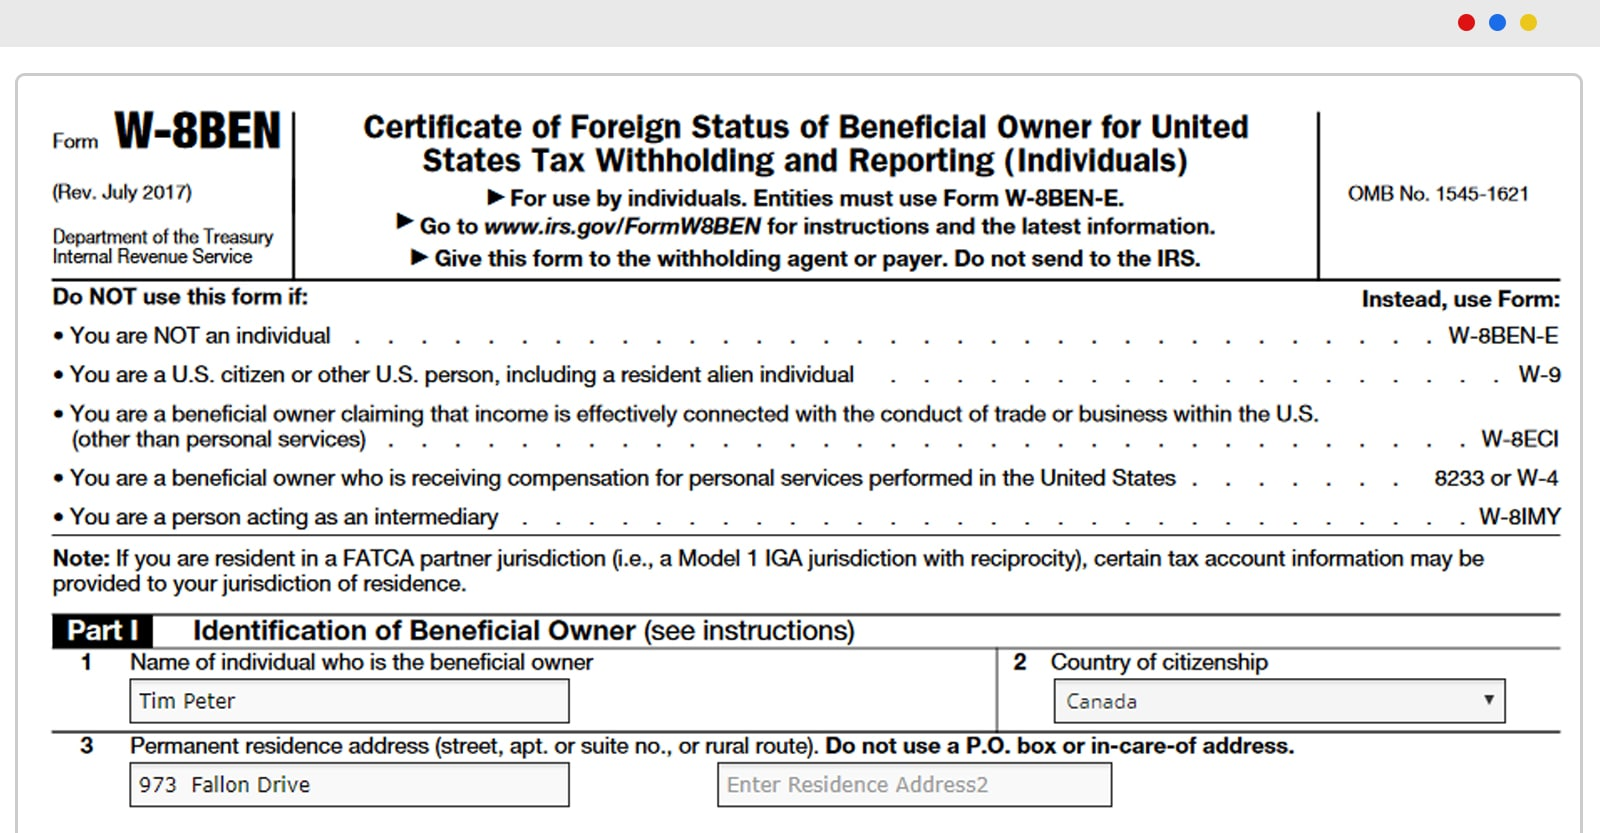 Review the Form W-8BEN